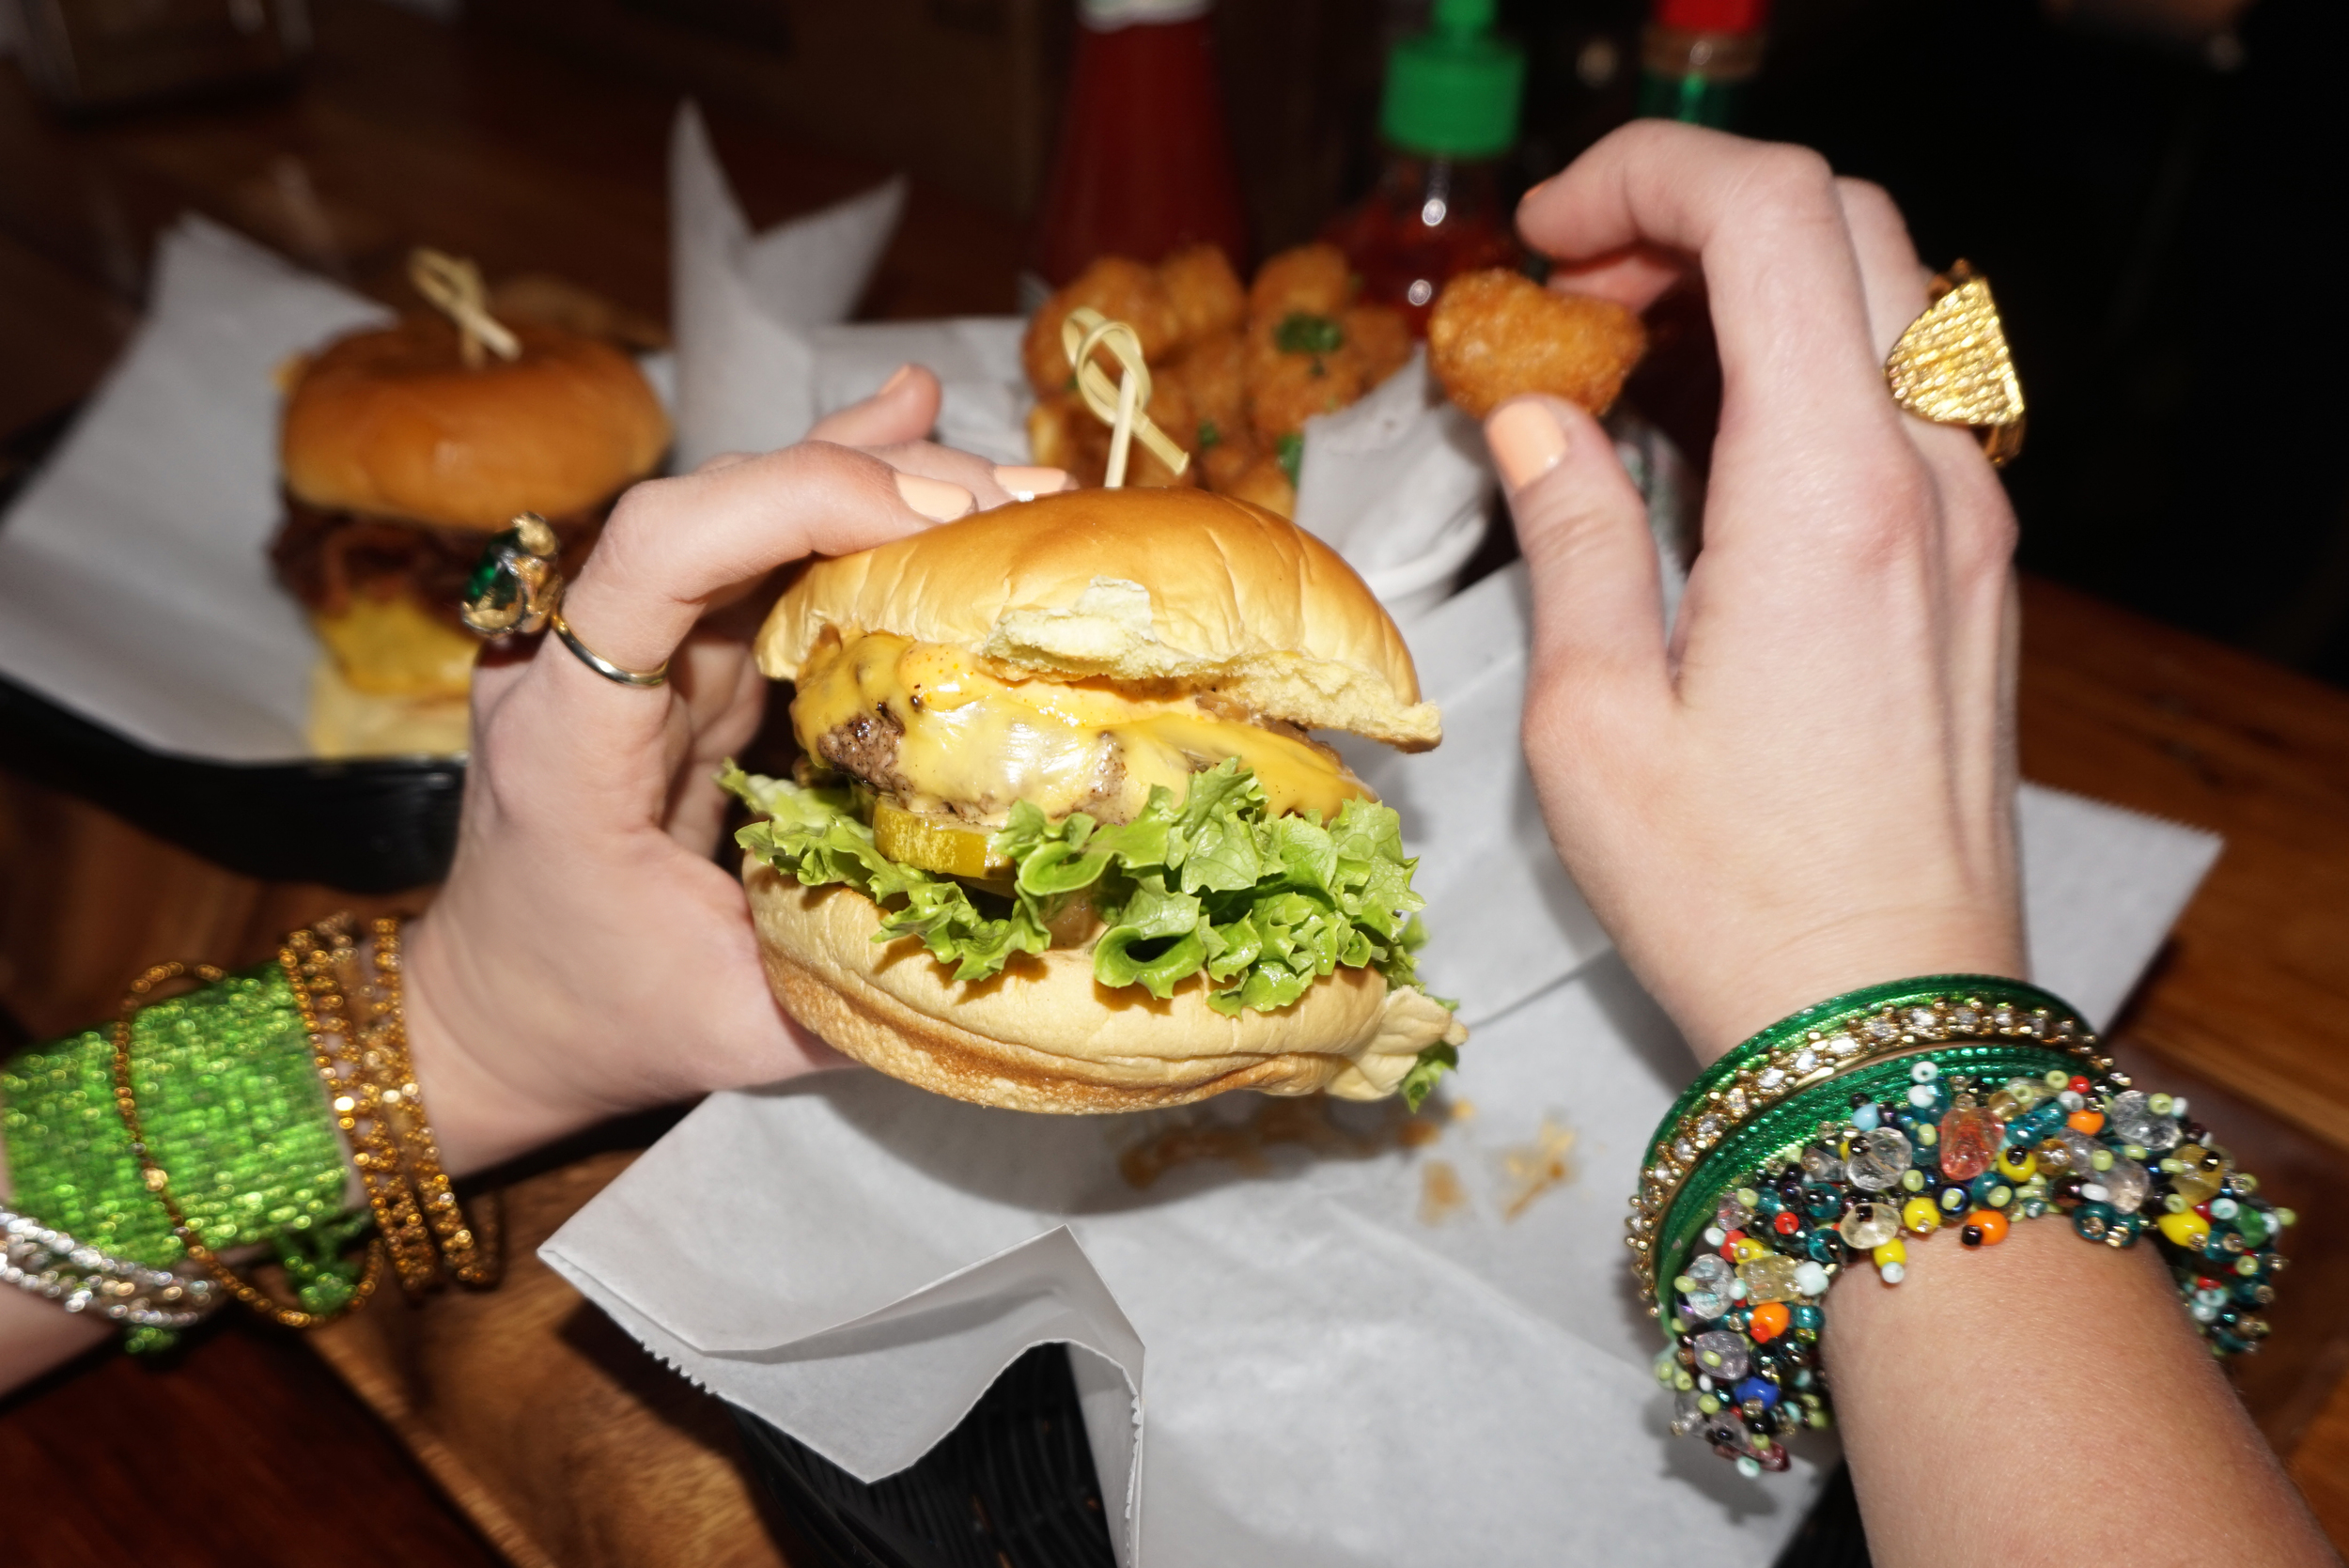 (from left):   Flea Market (from India)   bangles;   Vintage   ring;   LES Kitchen   burger (available   here  );  Flea Market (from India)  bangles